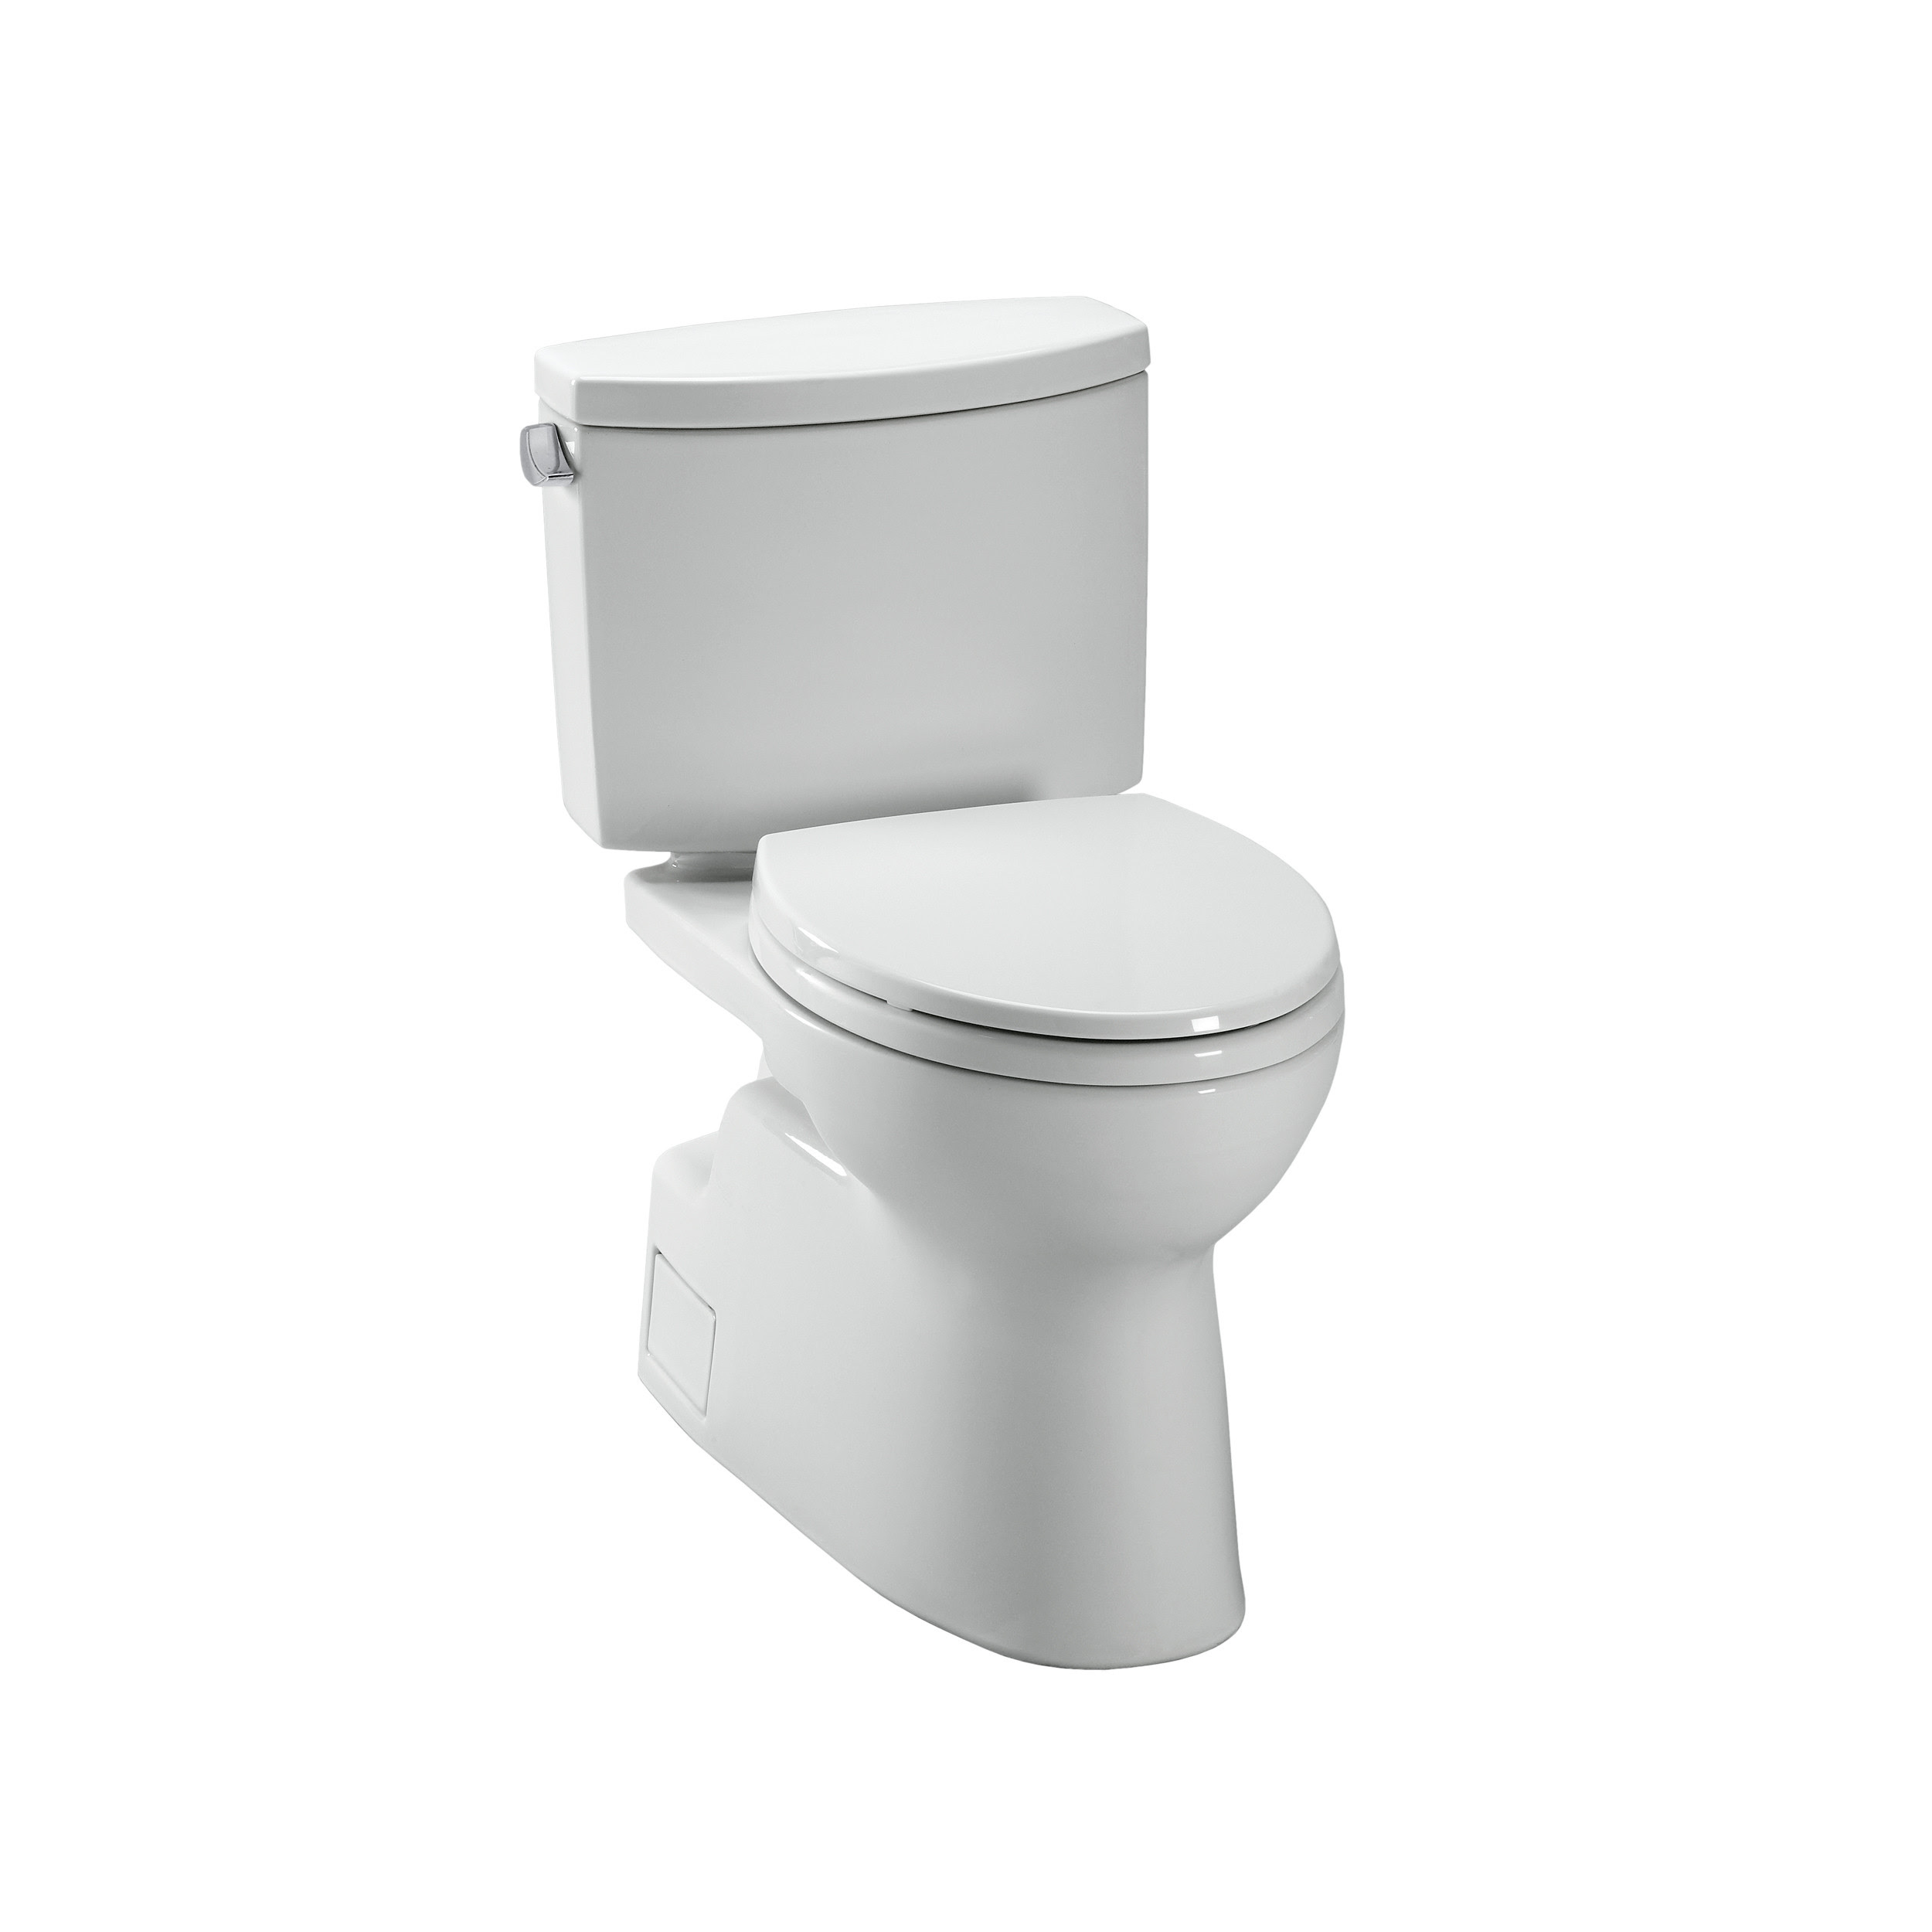 Bath & Shower Toto Soft Close Toilet Seat Toto Toilet